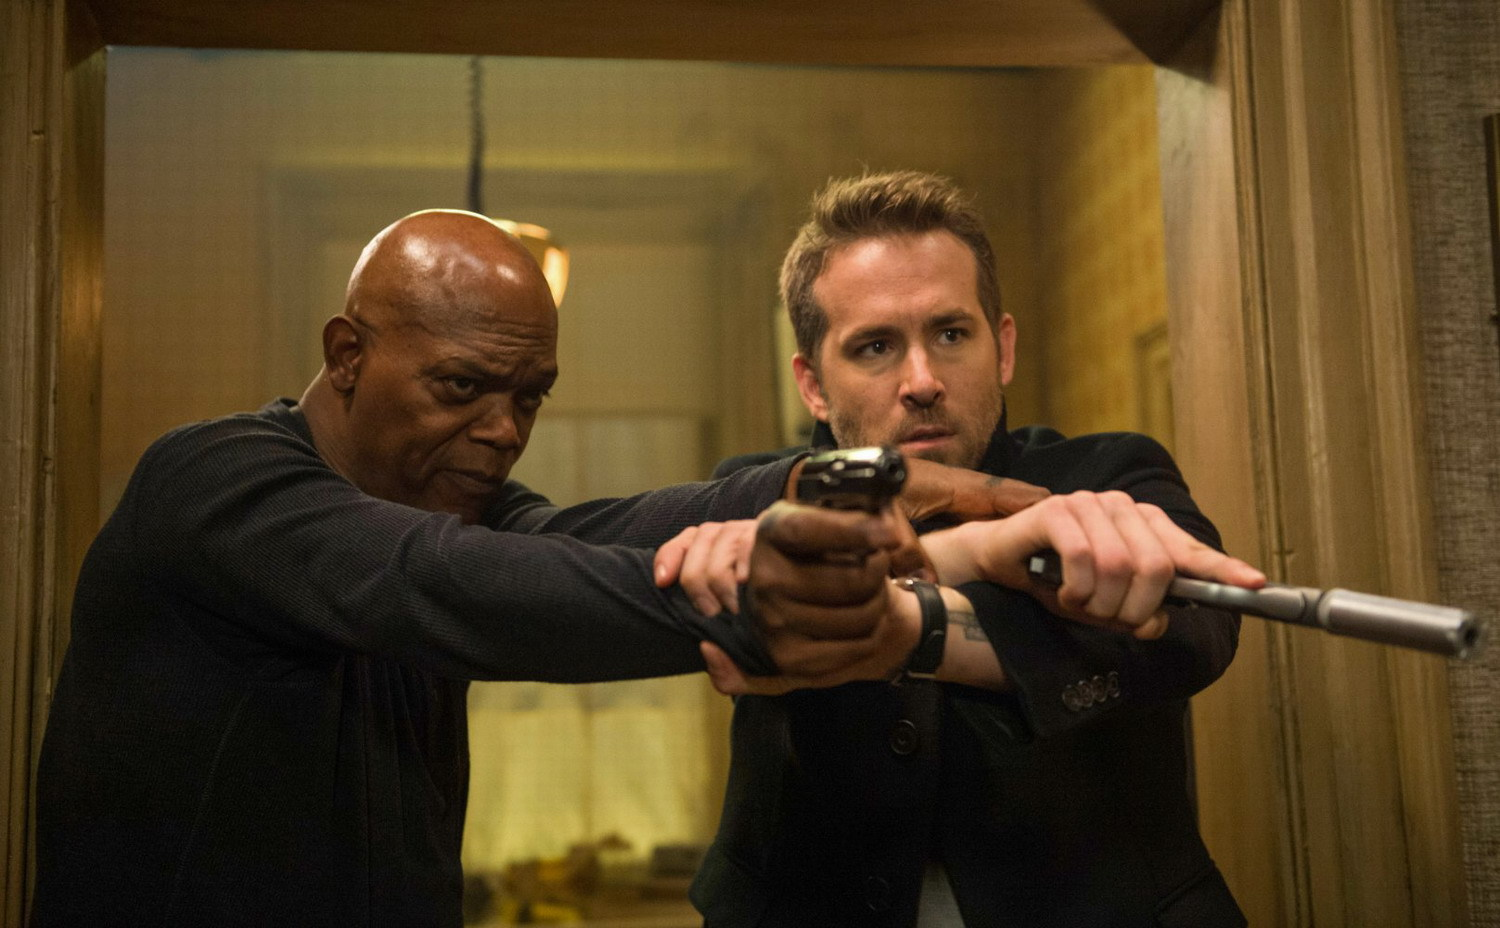 The Hitman's Bodyguard Film Review